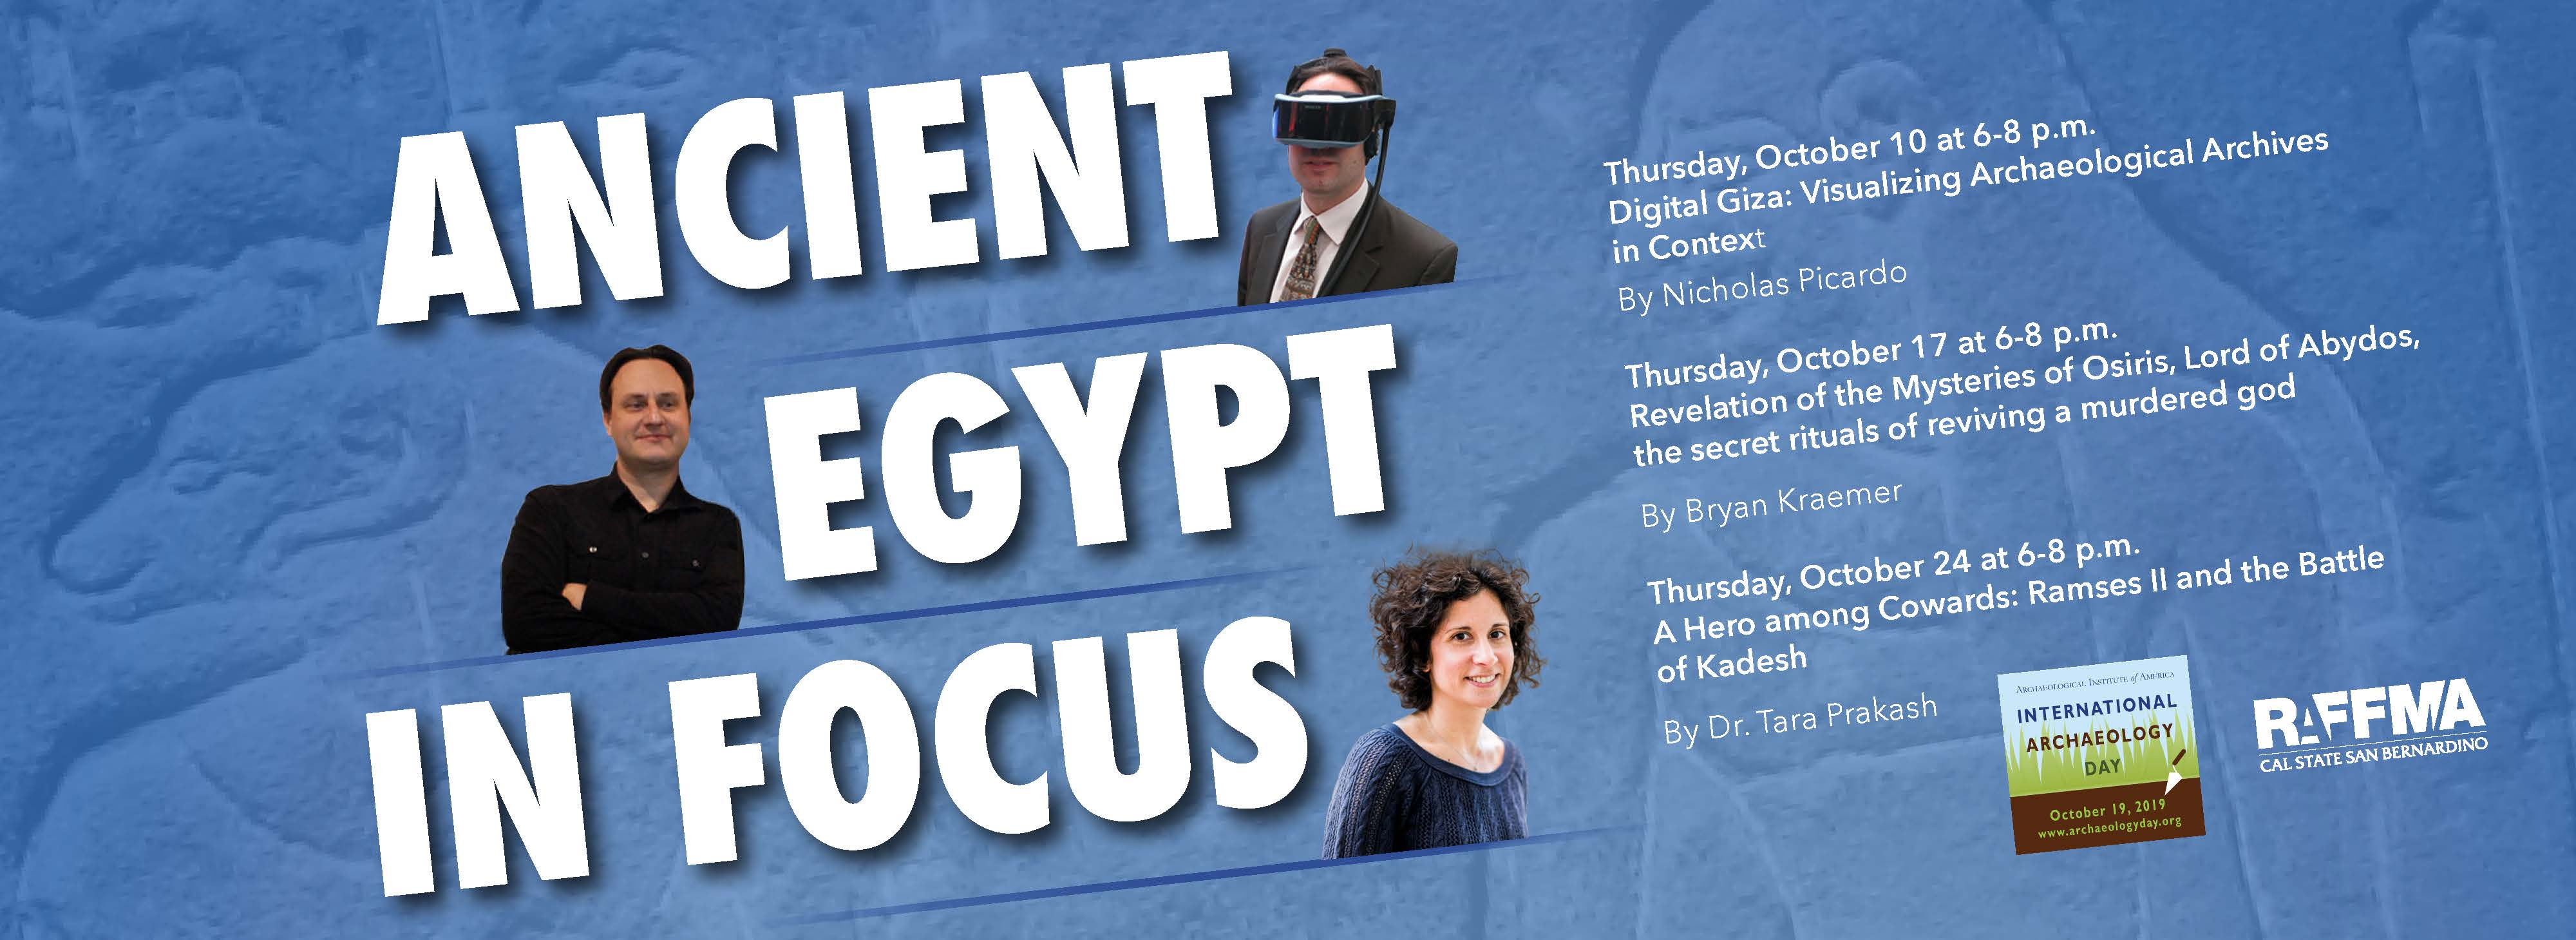 Ancient Egypt in Focus